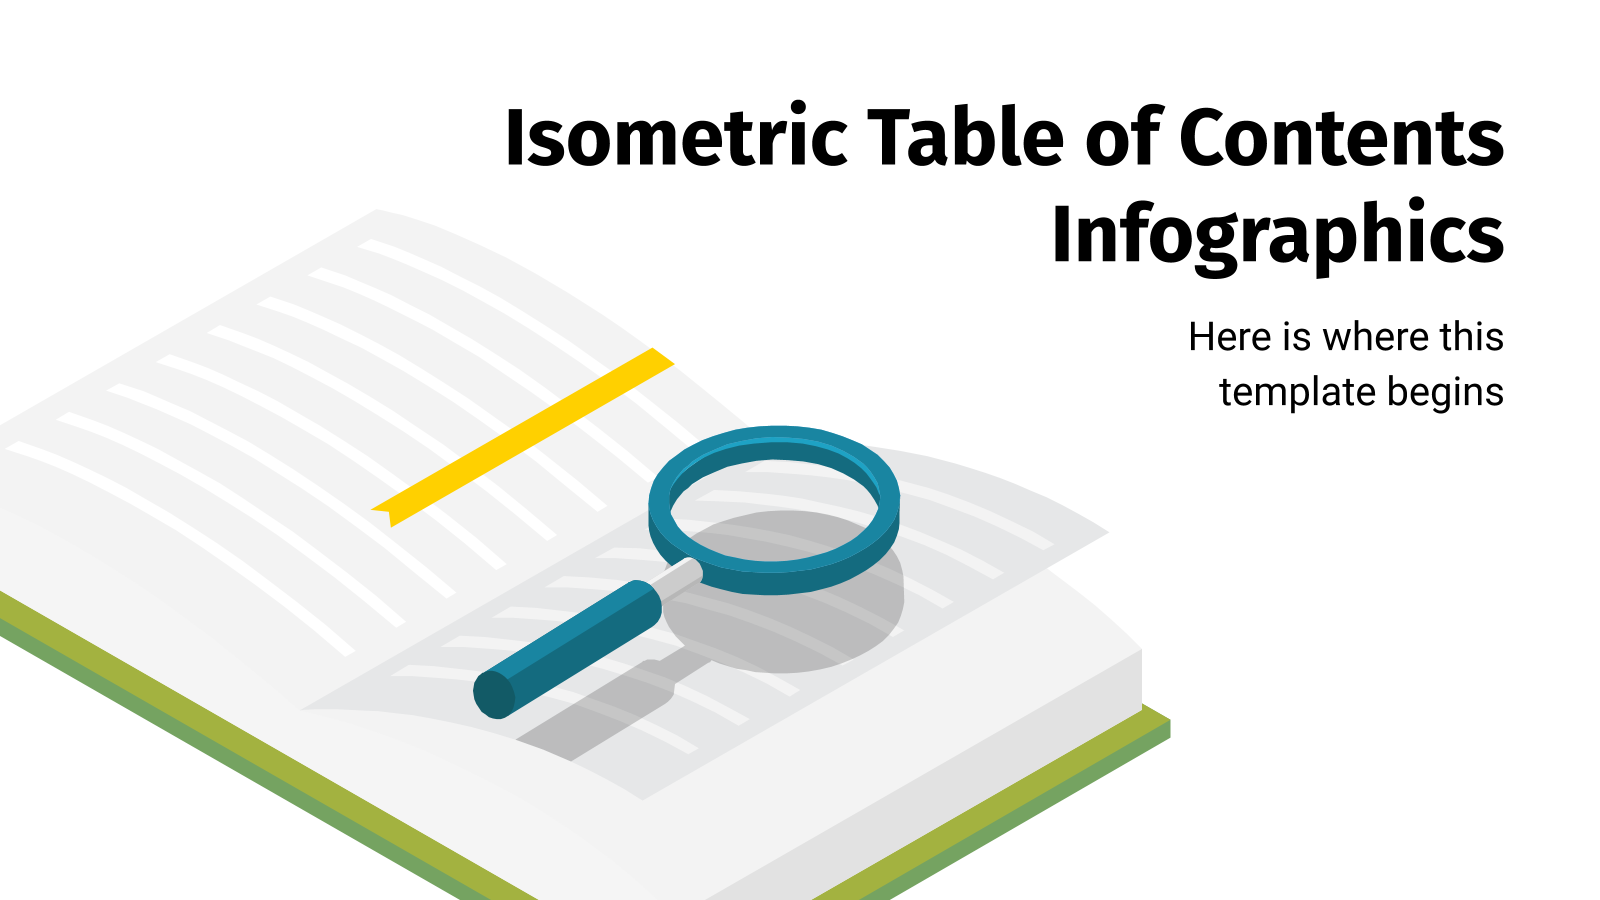 Isometric Table of Contents Infographics presentation template